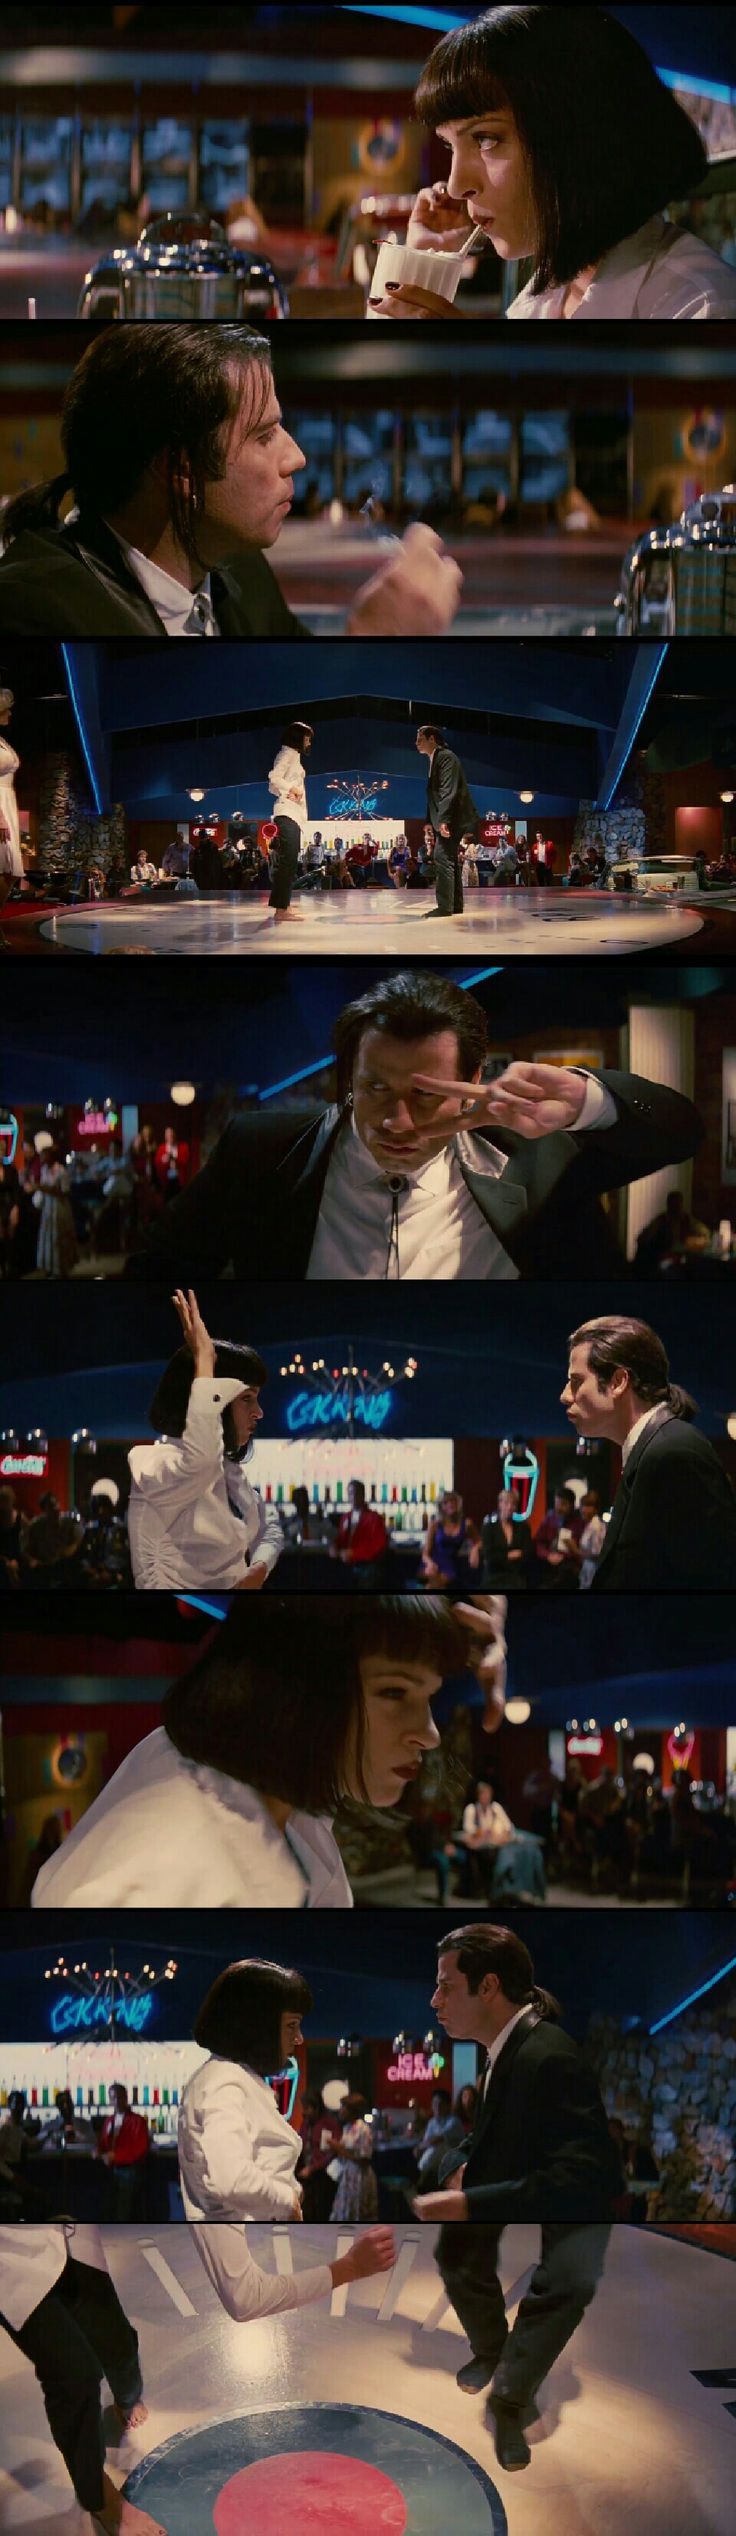 Mia Wallace and Vincent Vega twist dance.